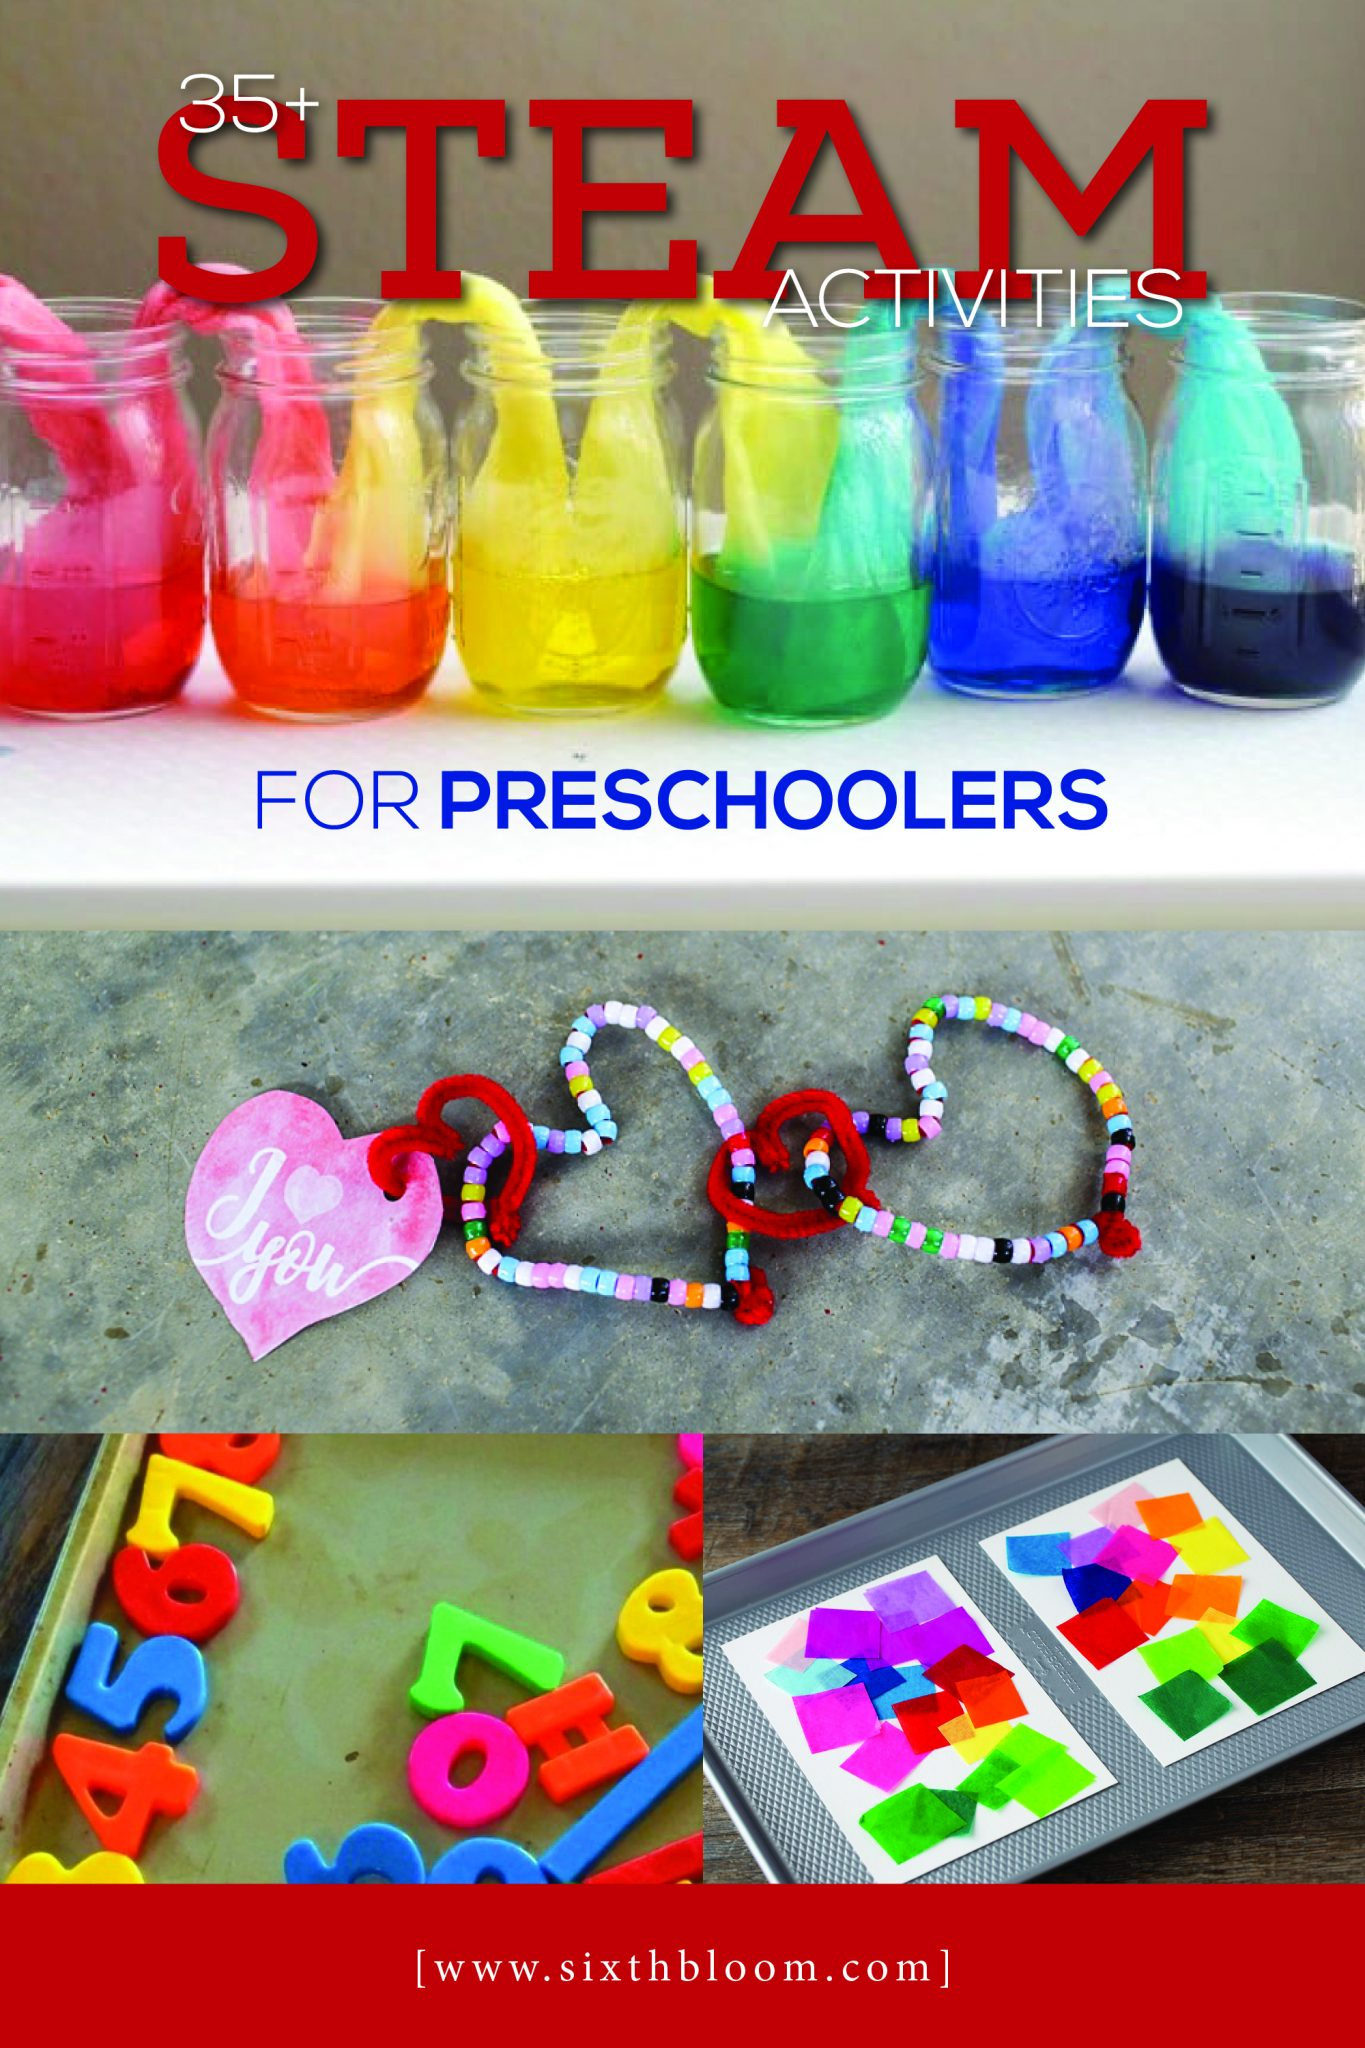 35 Steam Activities For Preschoolers